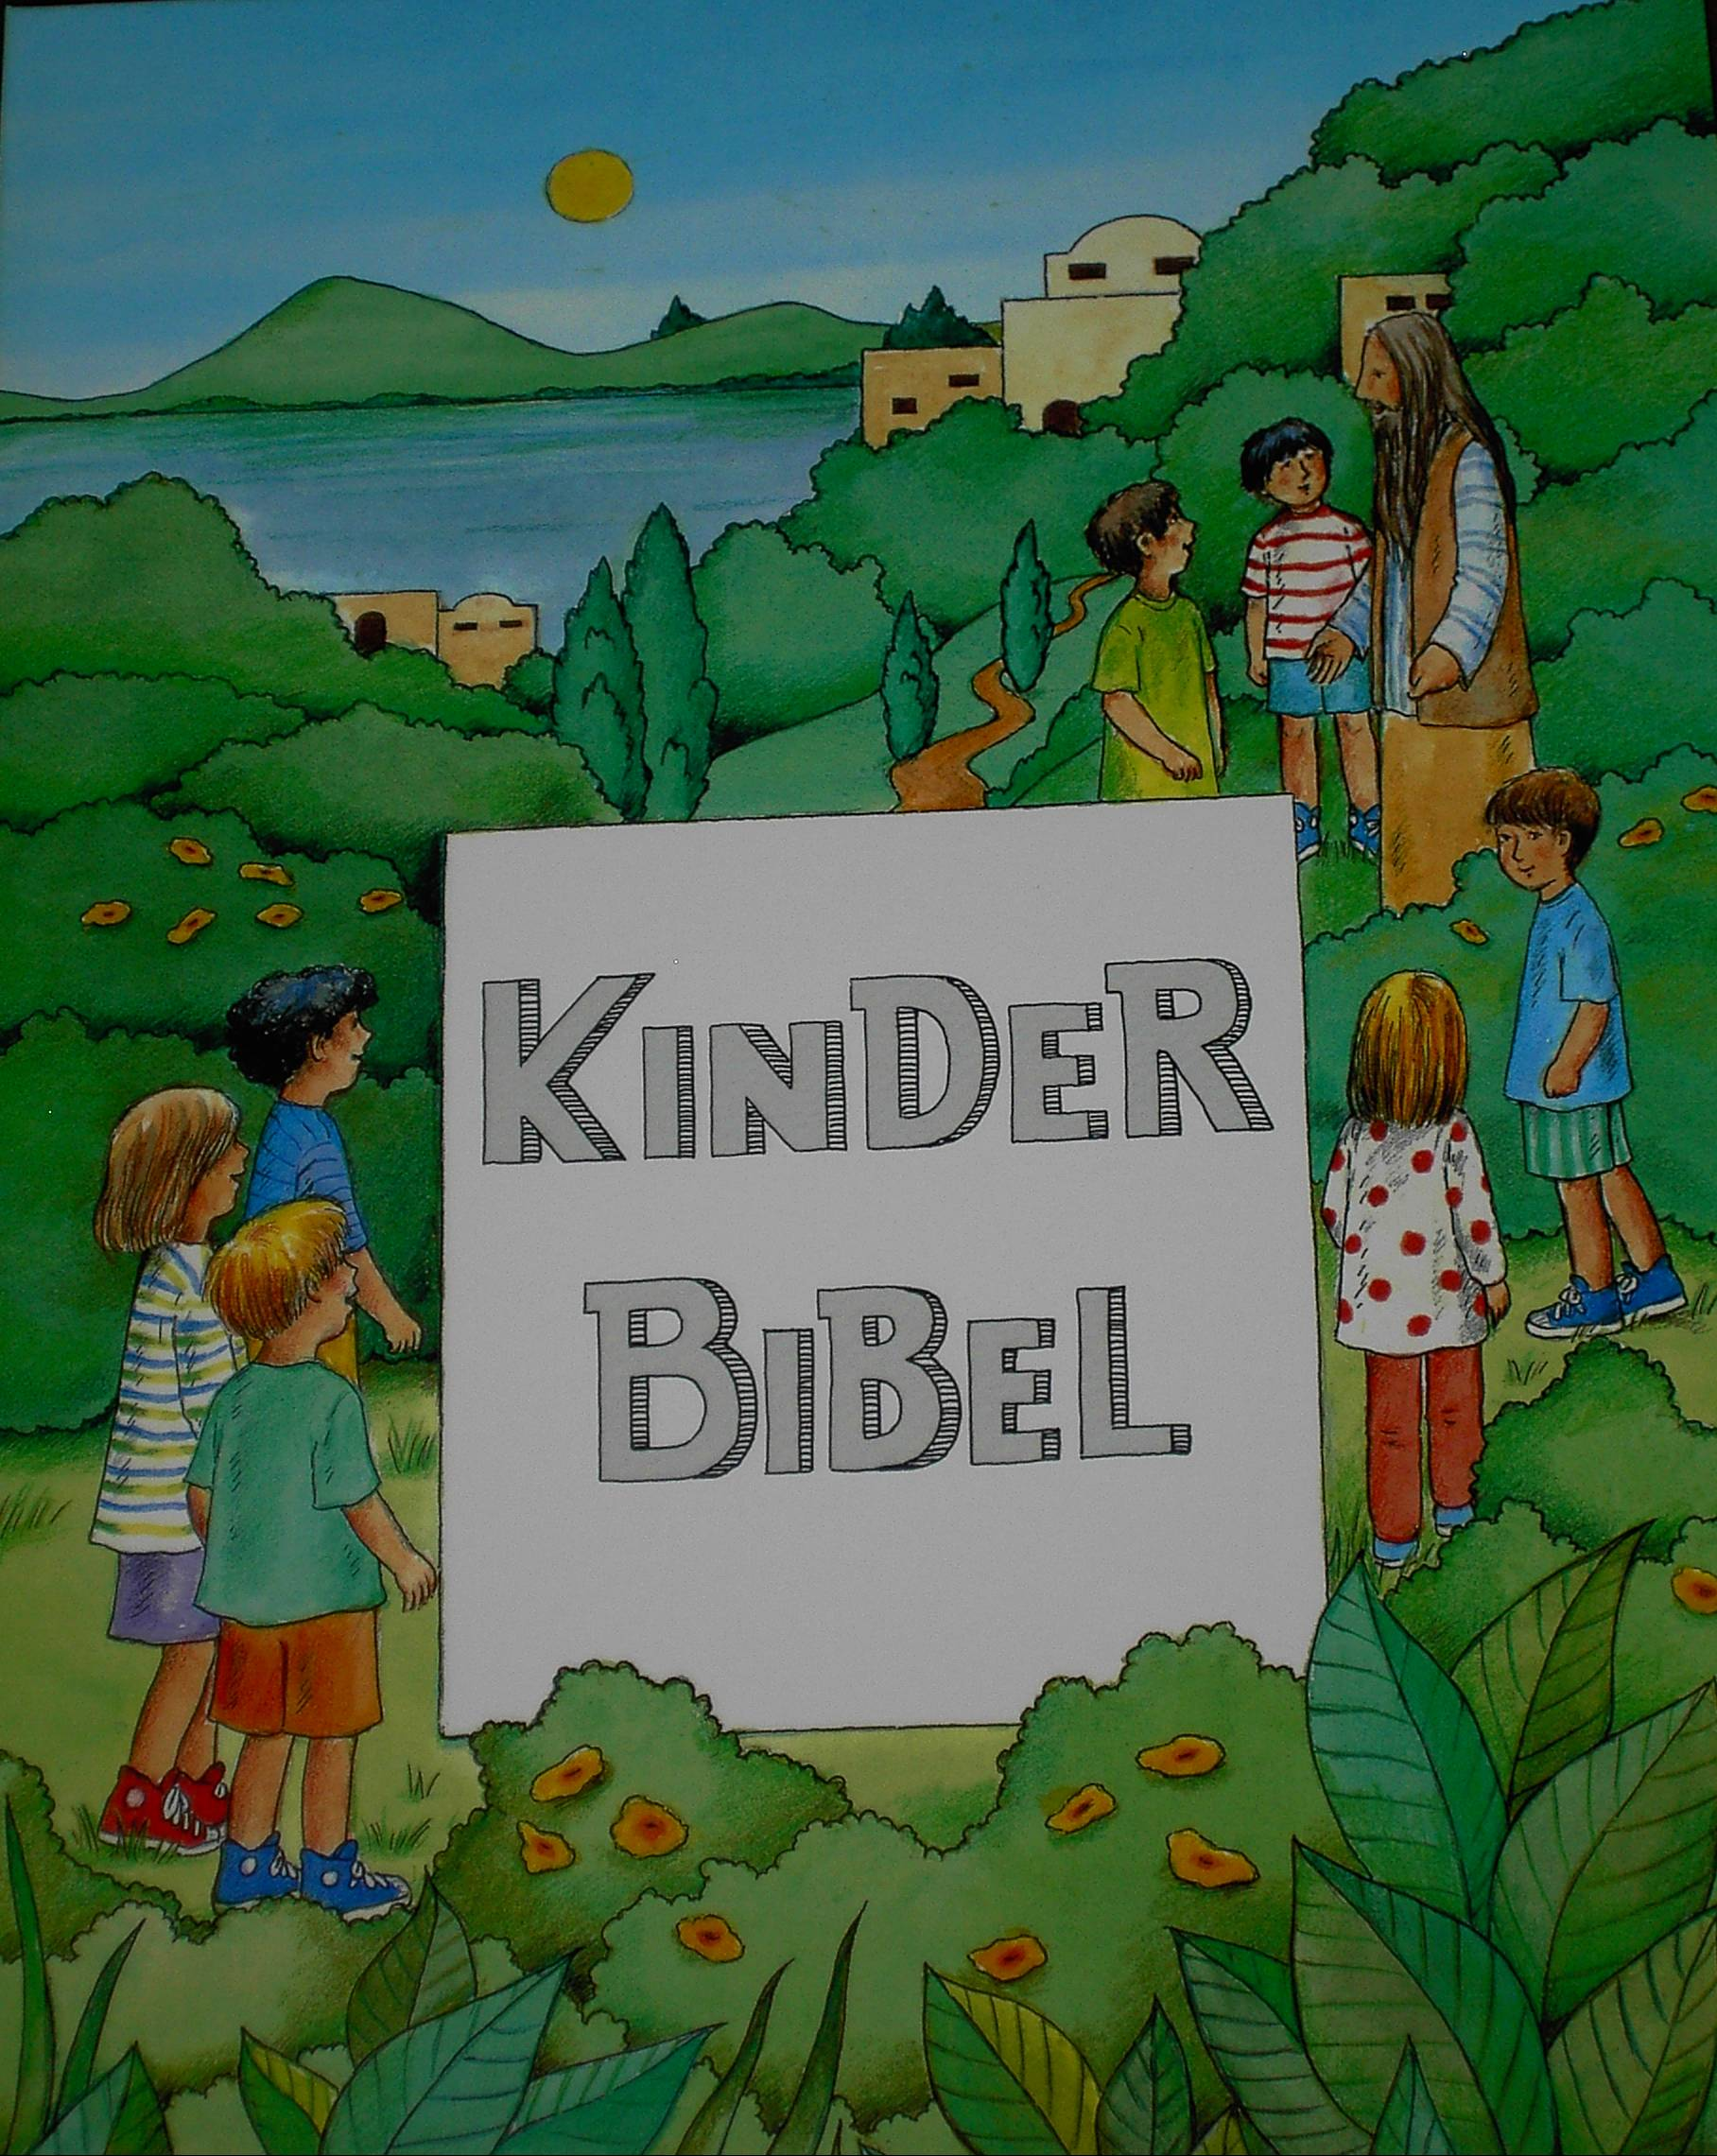 1548756858_Kinderbibel.jpg